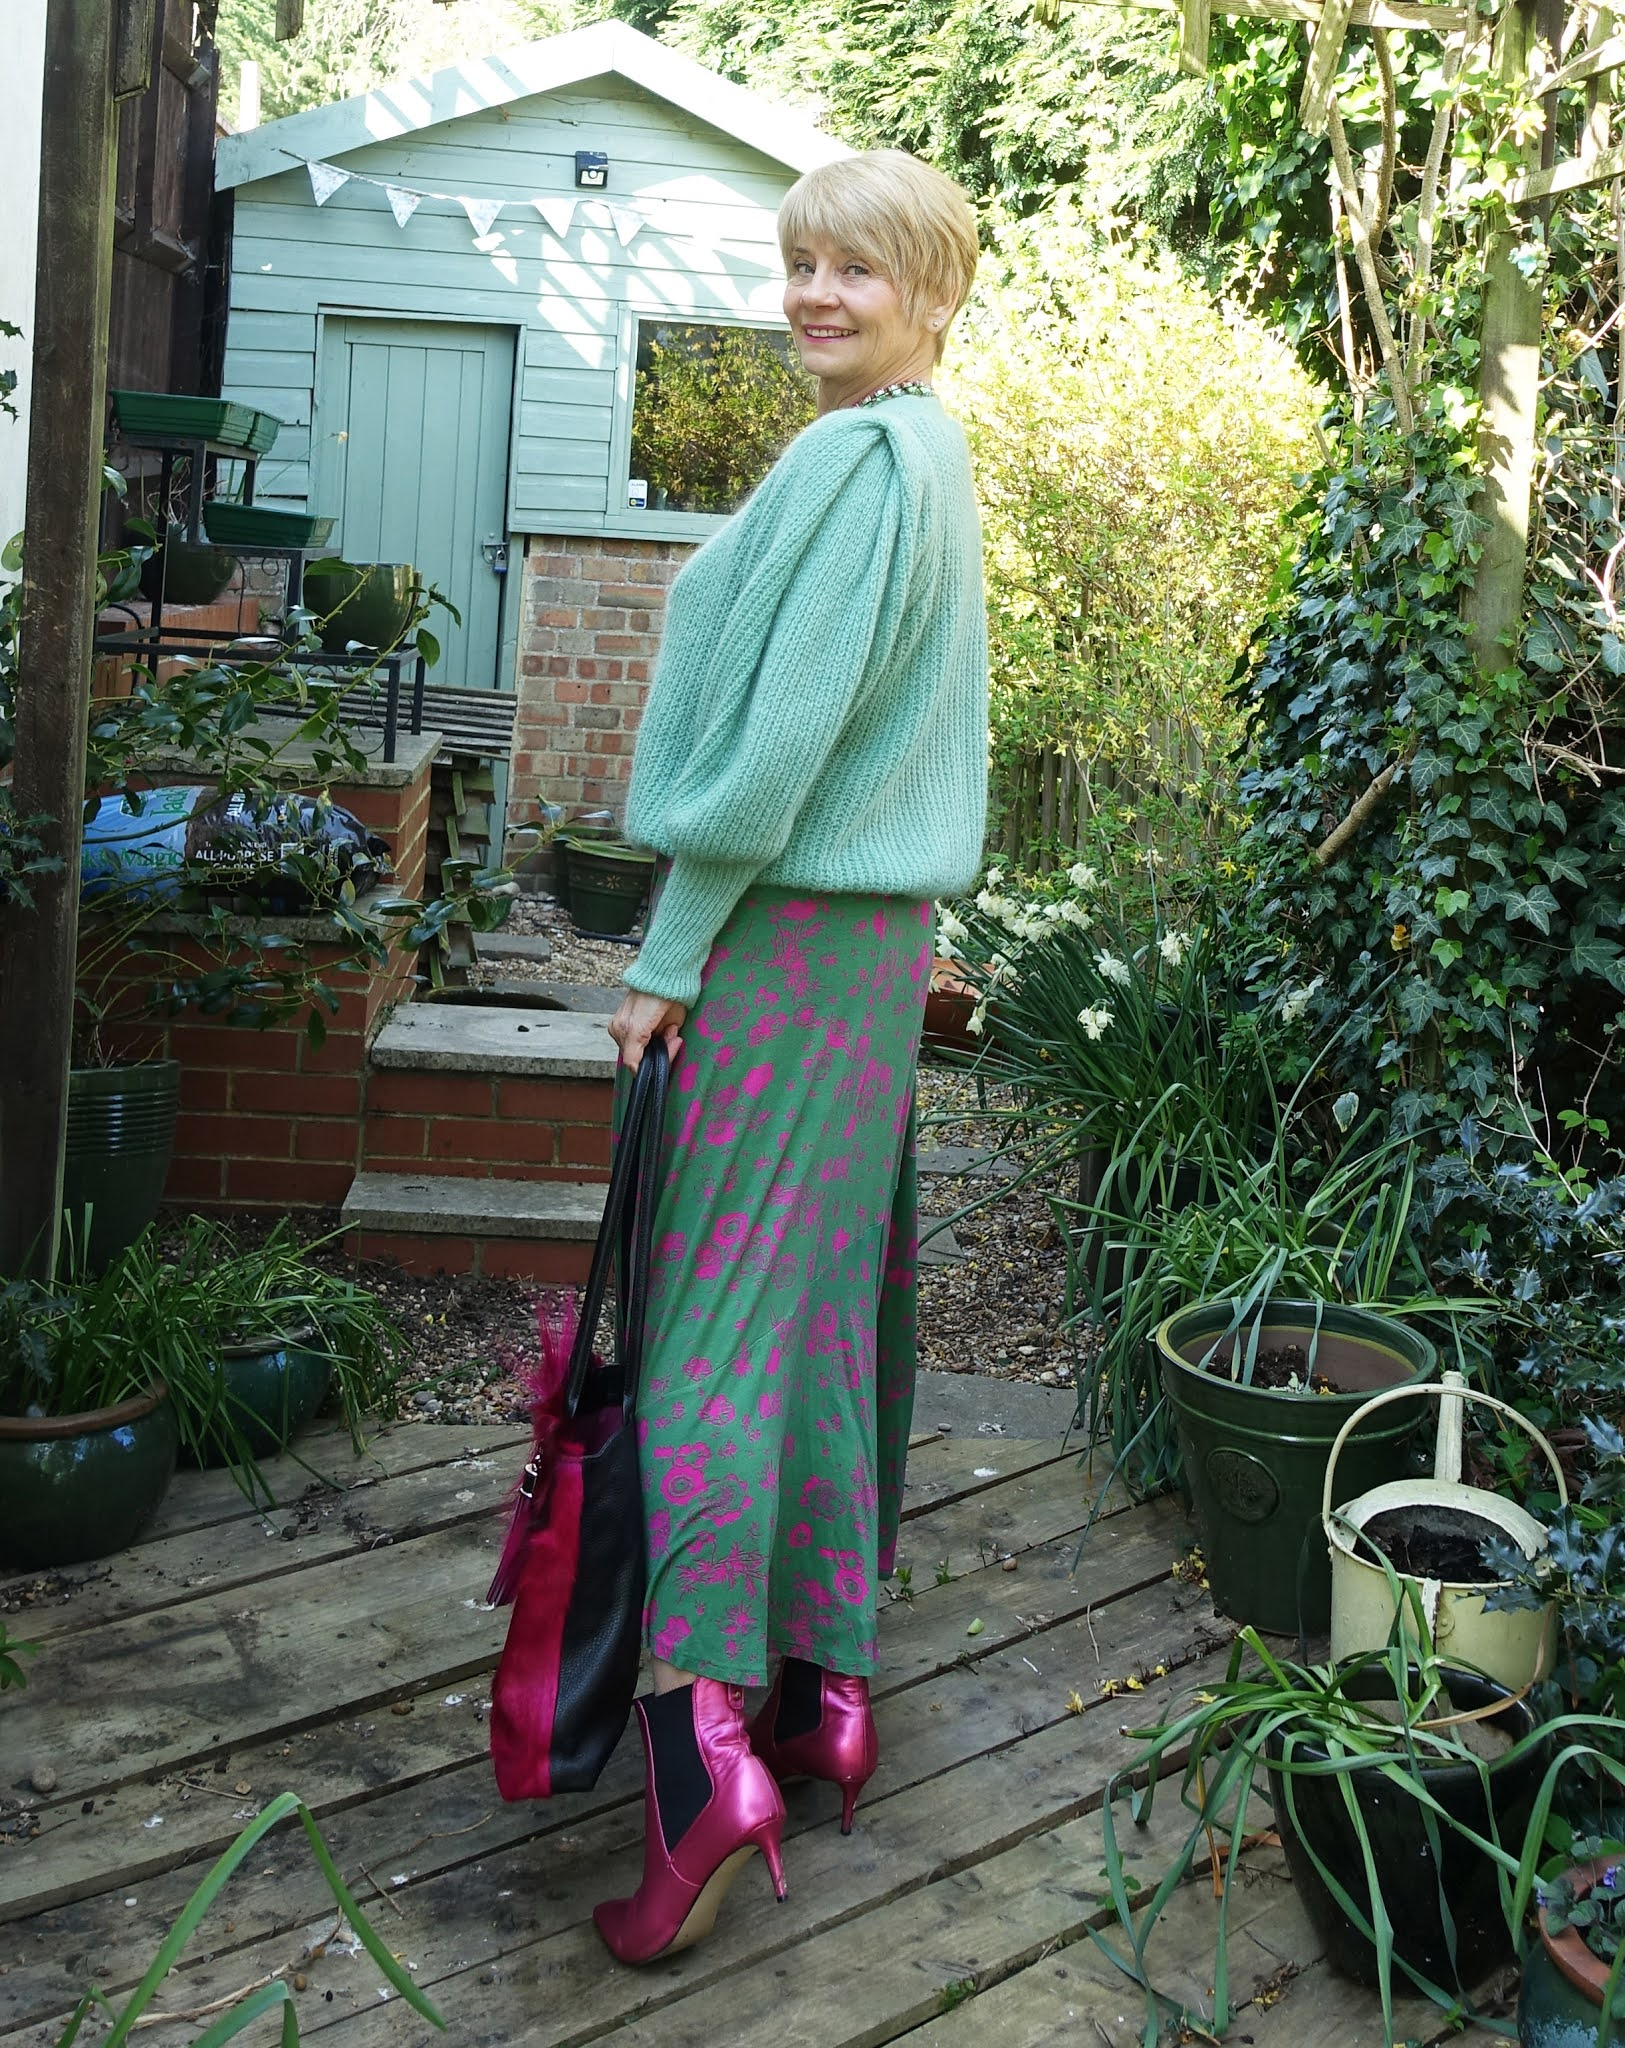 Summer dresses start to see the light of day in spring when worn with a light cardigan or sweater, as Gail Hanlon shows with her green mohair cardigan worn over a dress for the Style Not Age Challenge Spring Sweaters